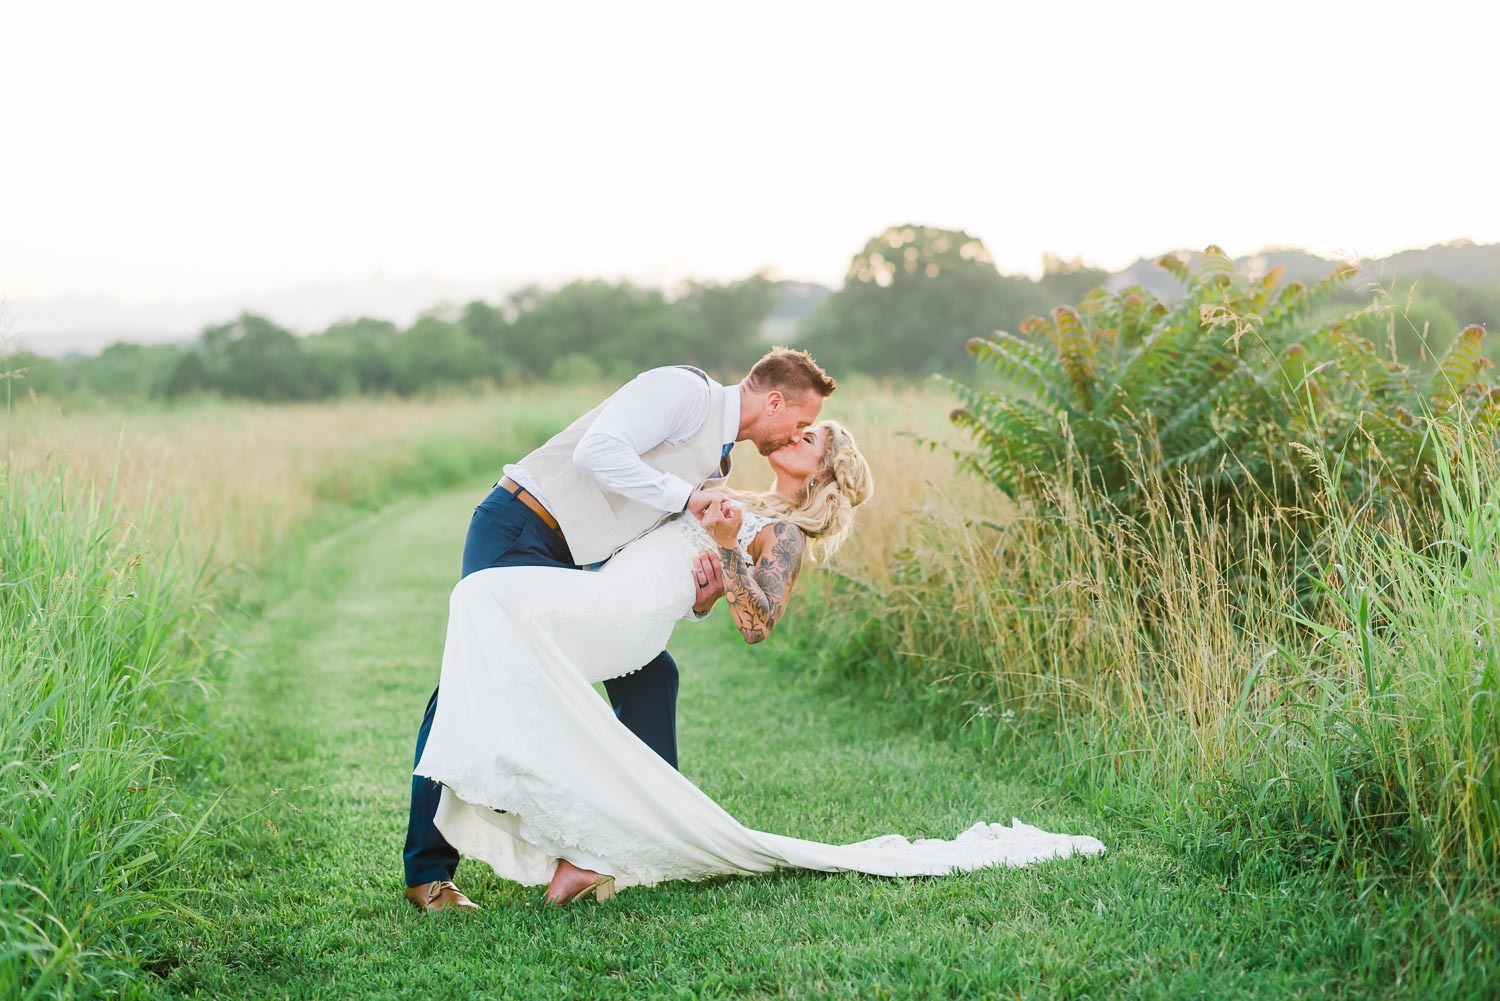 groom dipping his bride back for a kiss outside in a grassy field during wedding photos in Tennessee